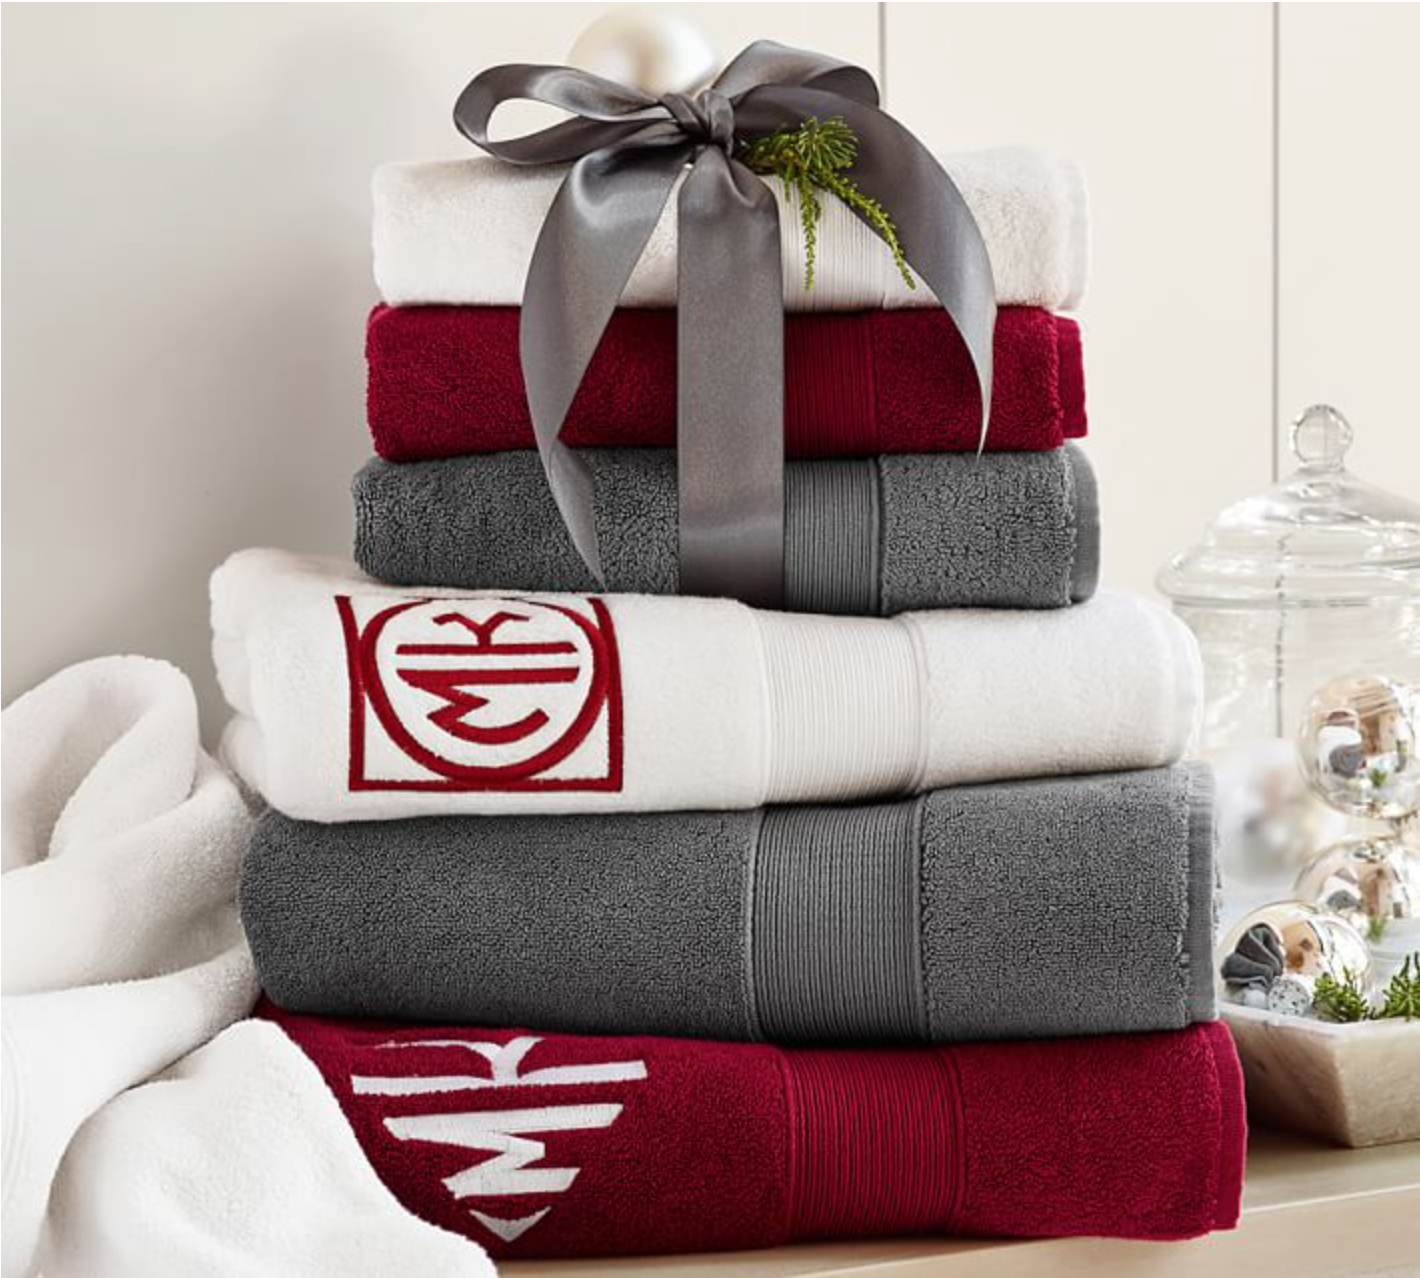 {Fresh towels will make your holiday guests feel at home – or at a nice hotel! From  Pottery Barn .}